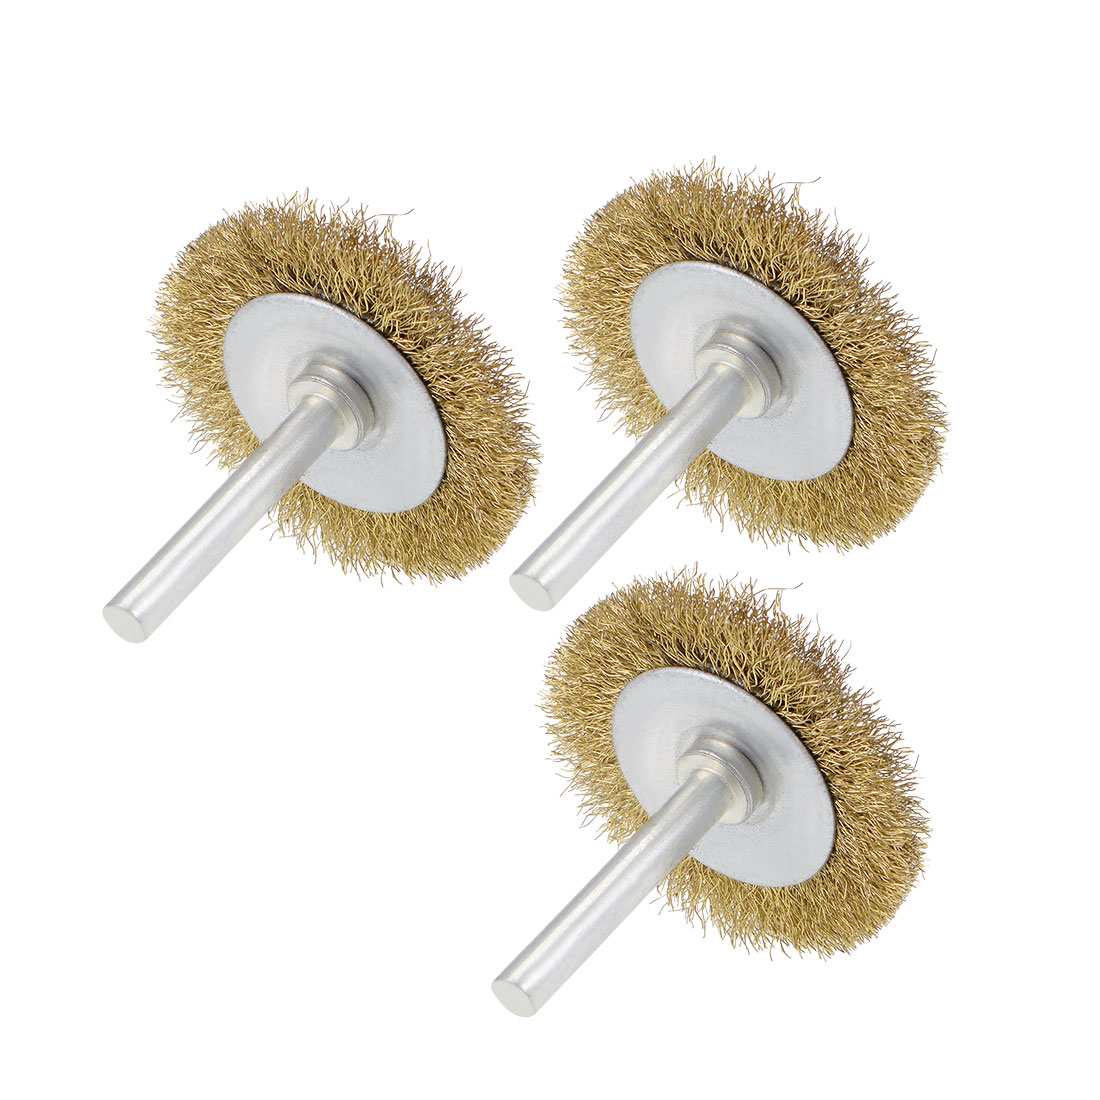 2-Inch Wire Wheel Brush Bench Brass Plated Crimped Steel w 1/4-Inch Shank 3 Pcs